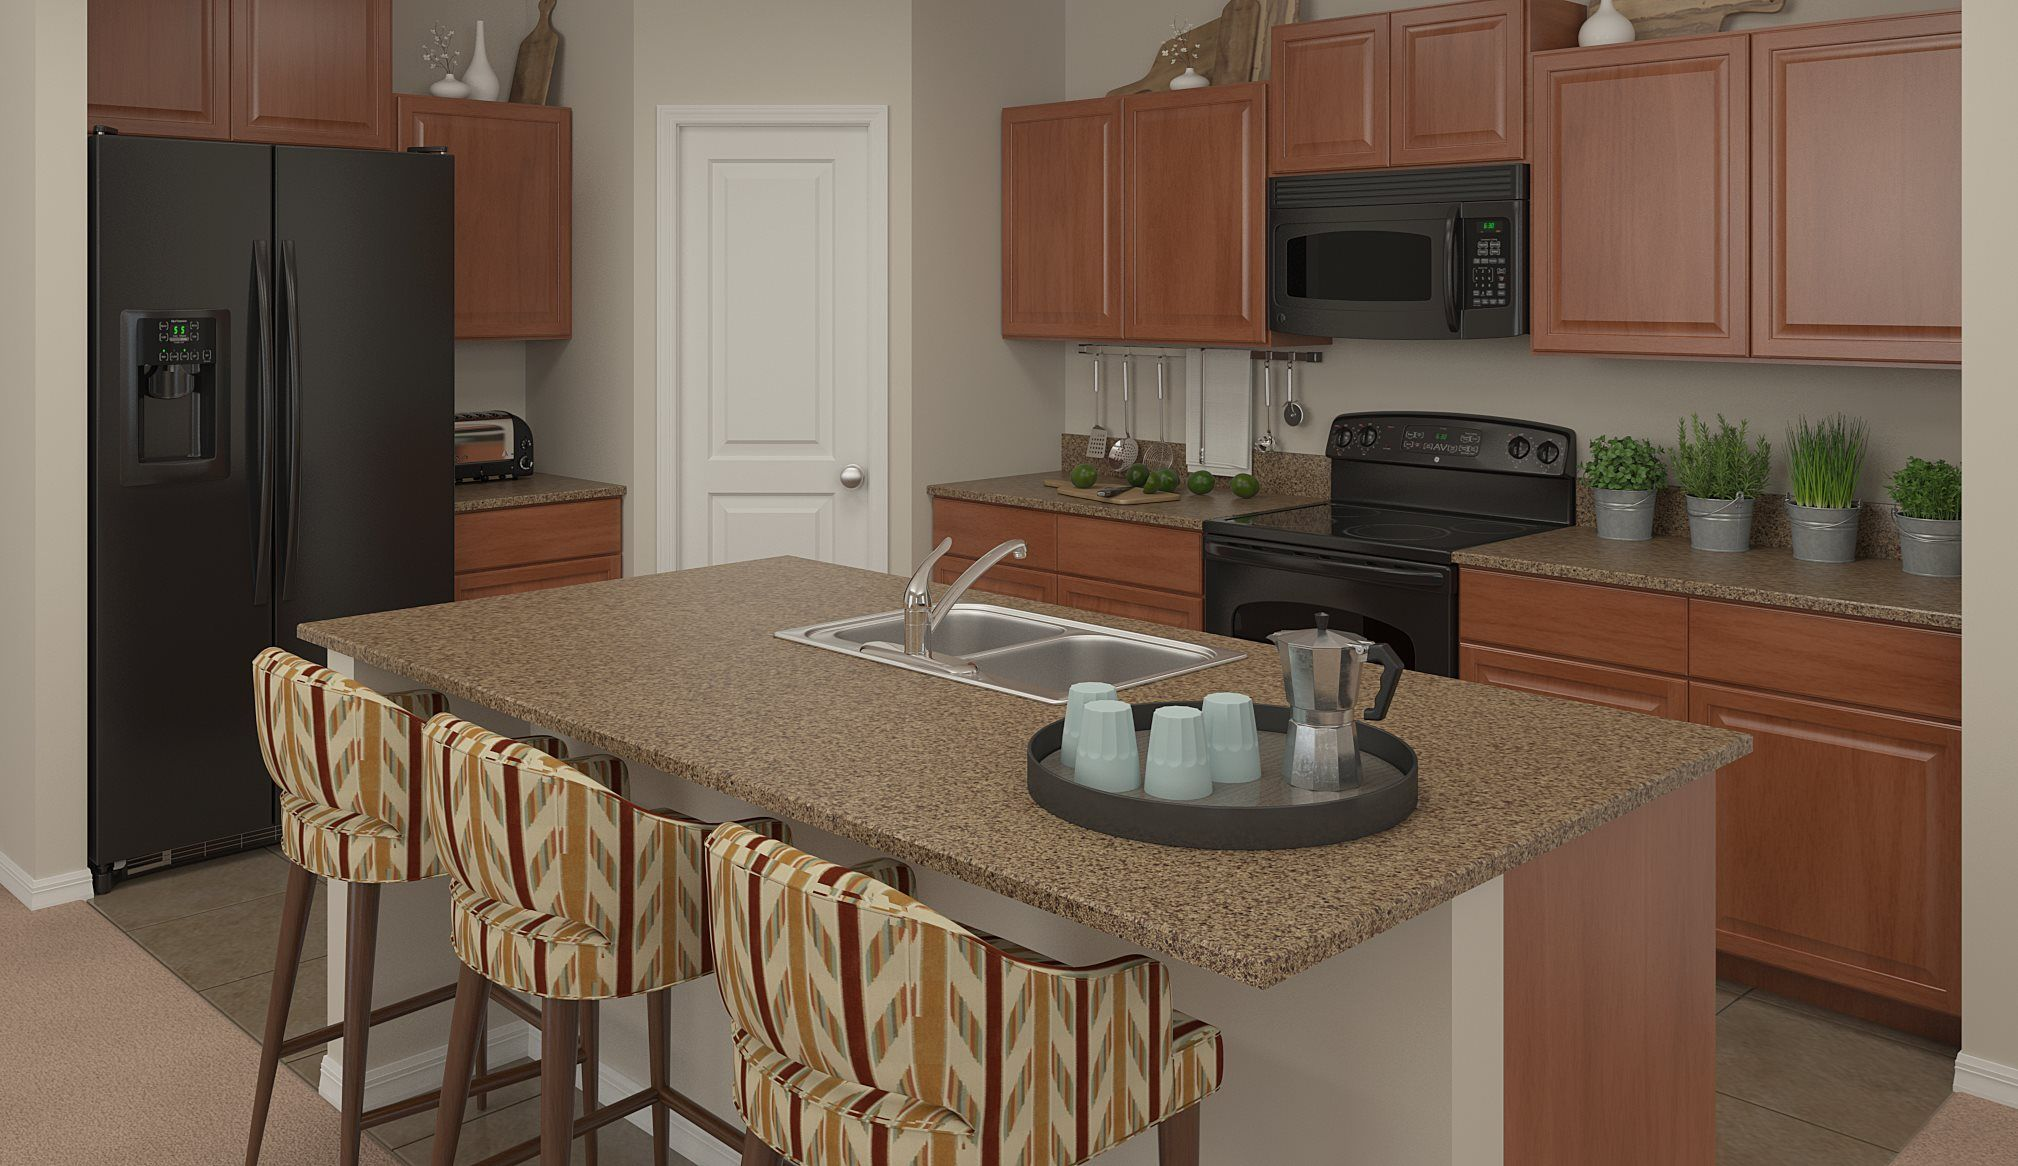 Kitchen featured in the Atlanta By Lennar in Tampa-St. Petersburg, FL